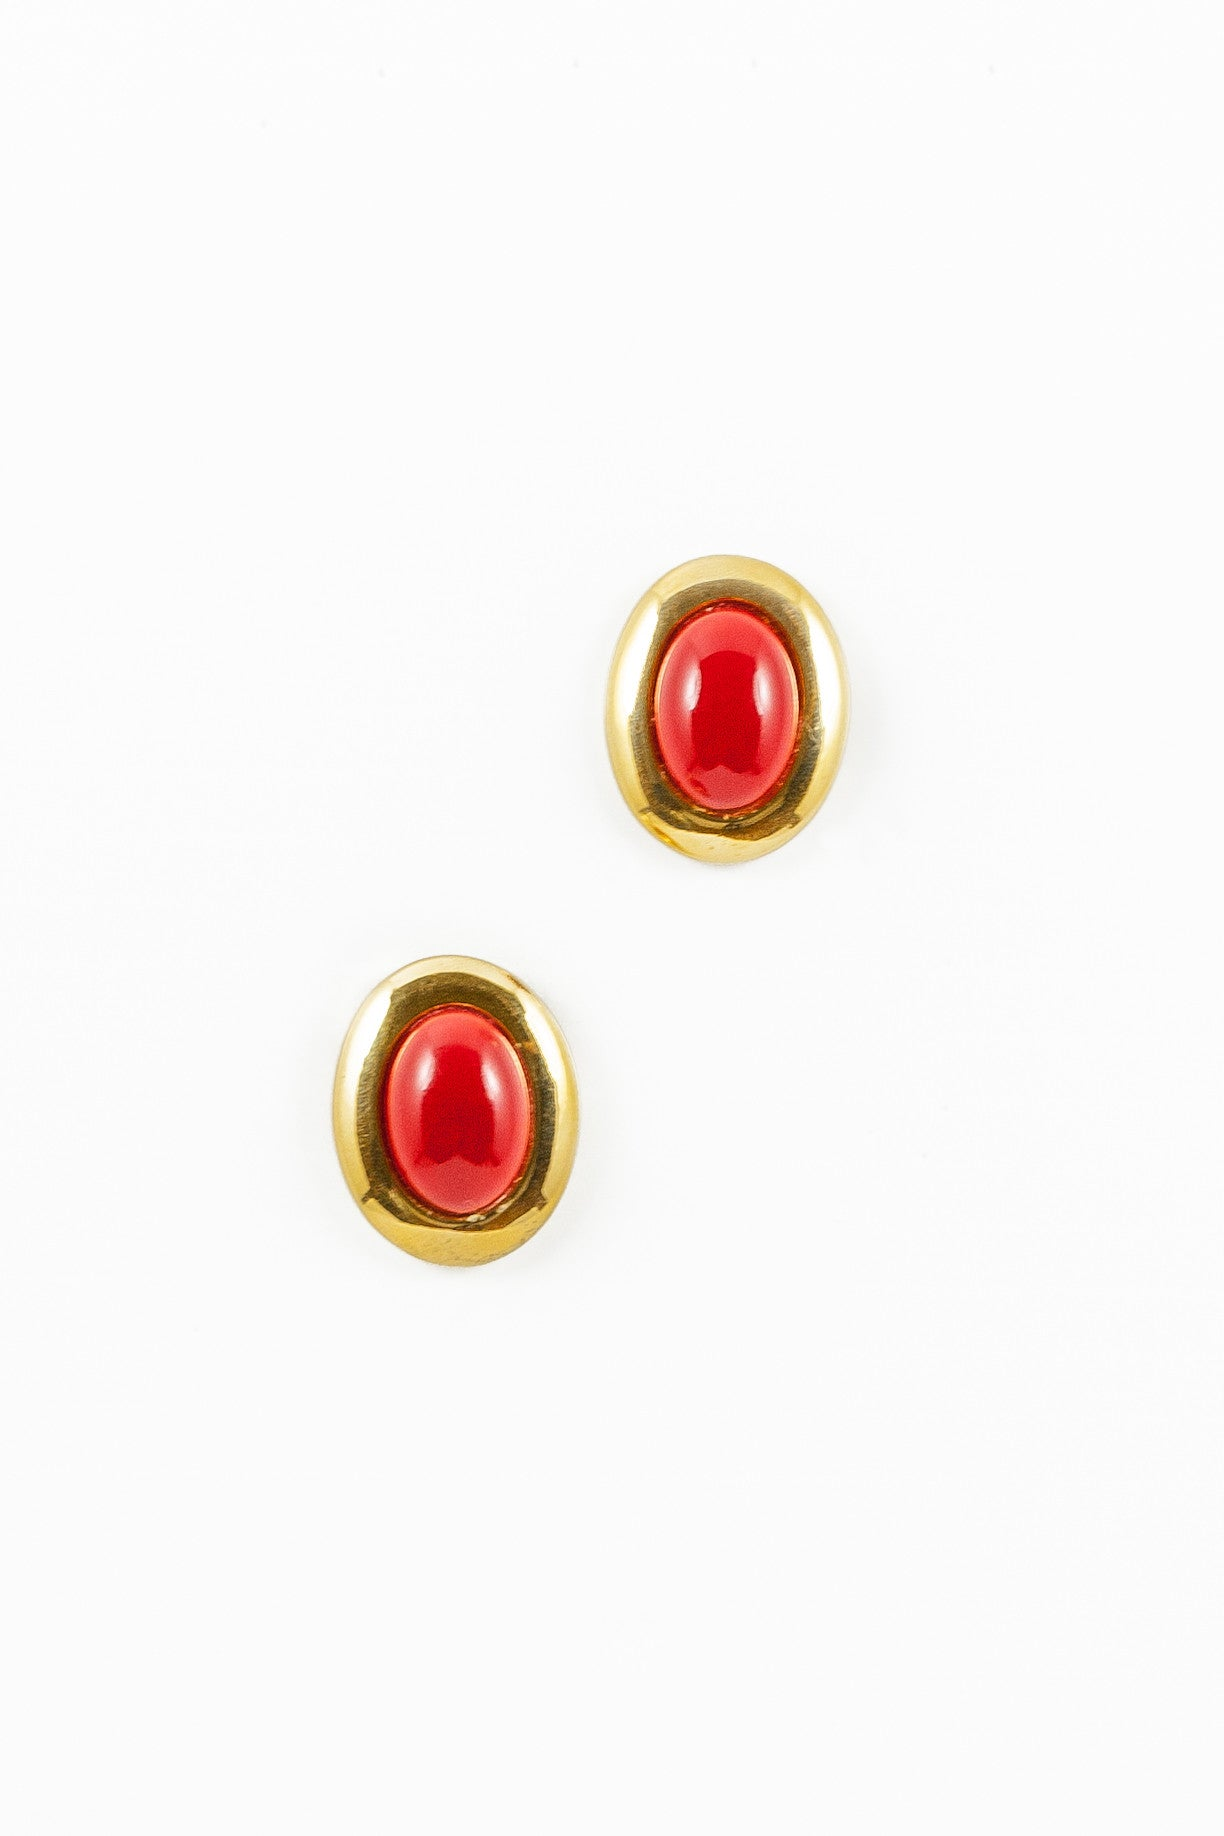 80's__Napier__Statement Red Stone Earrings